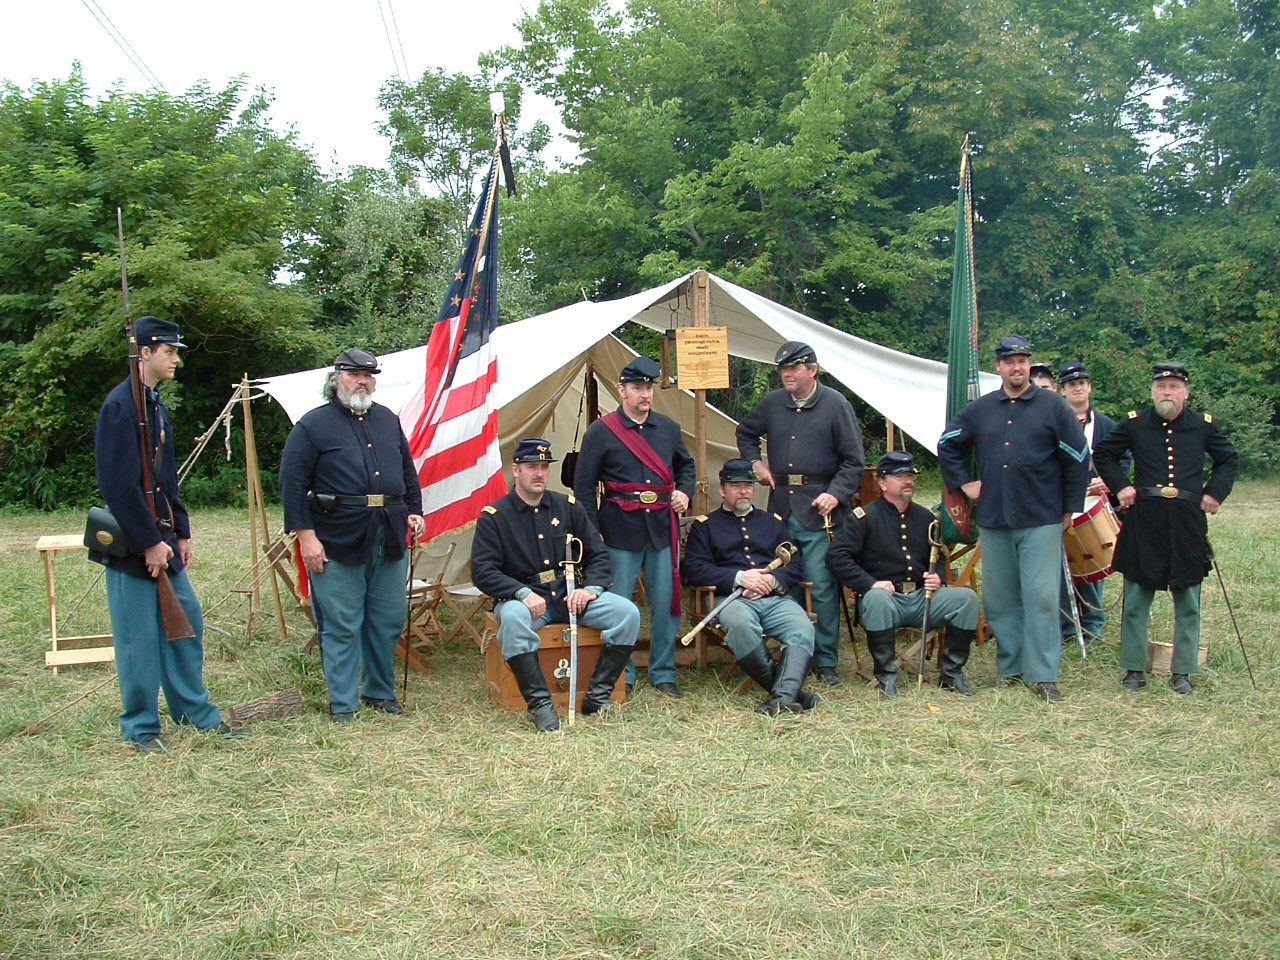 In front of the Regimental Tent ala 1865